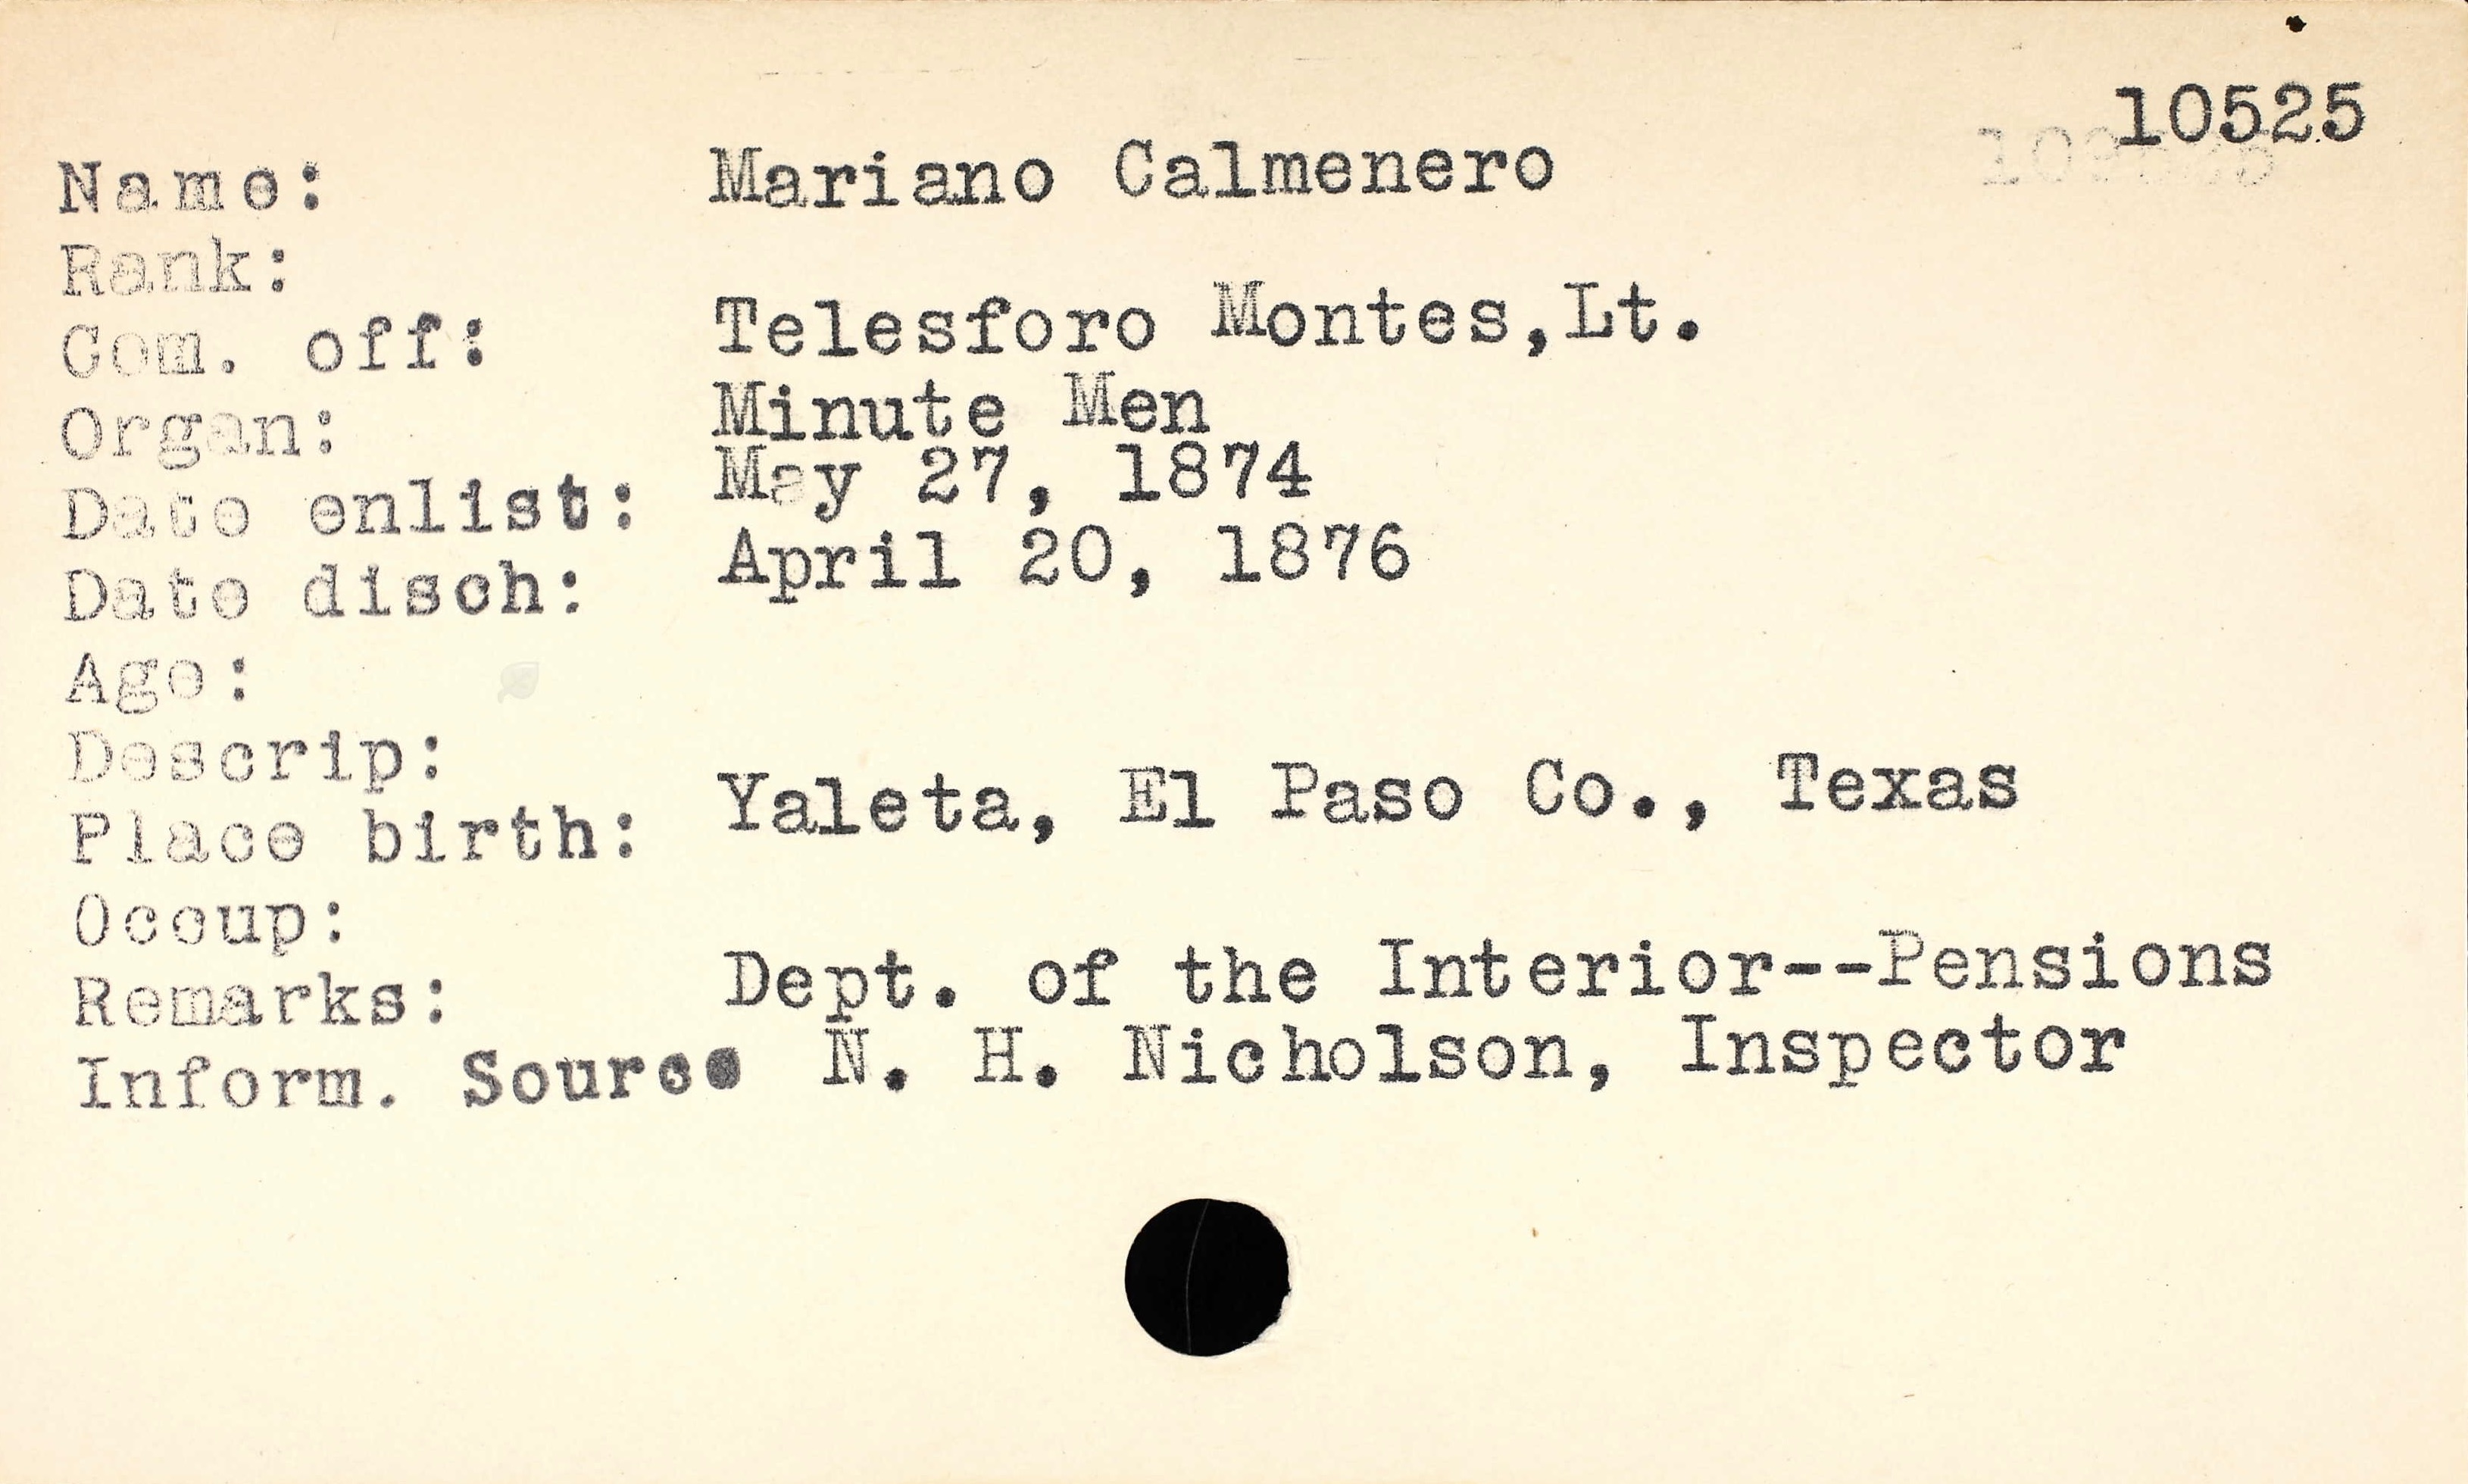 Mariano colmenero 1836 1926 find a grave memorial texas muster roll index cards 1838 1900 name mariano calmenero birth place yaleta el paso texas enlistment date 27 may 1874 record type ranger rolls aiddatafo Gallery